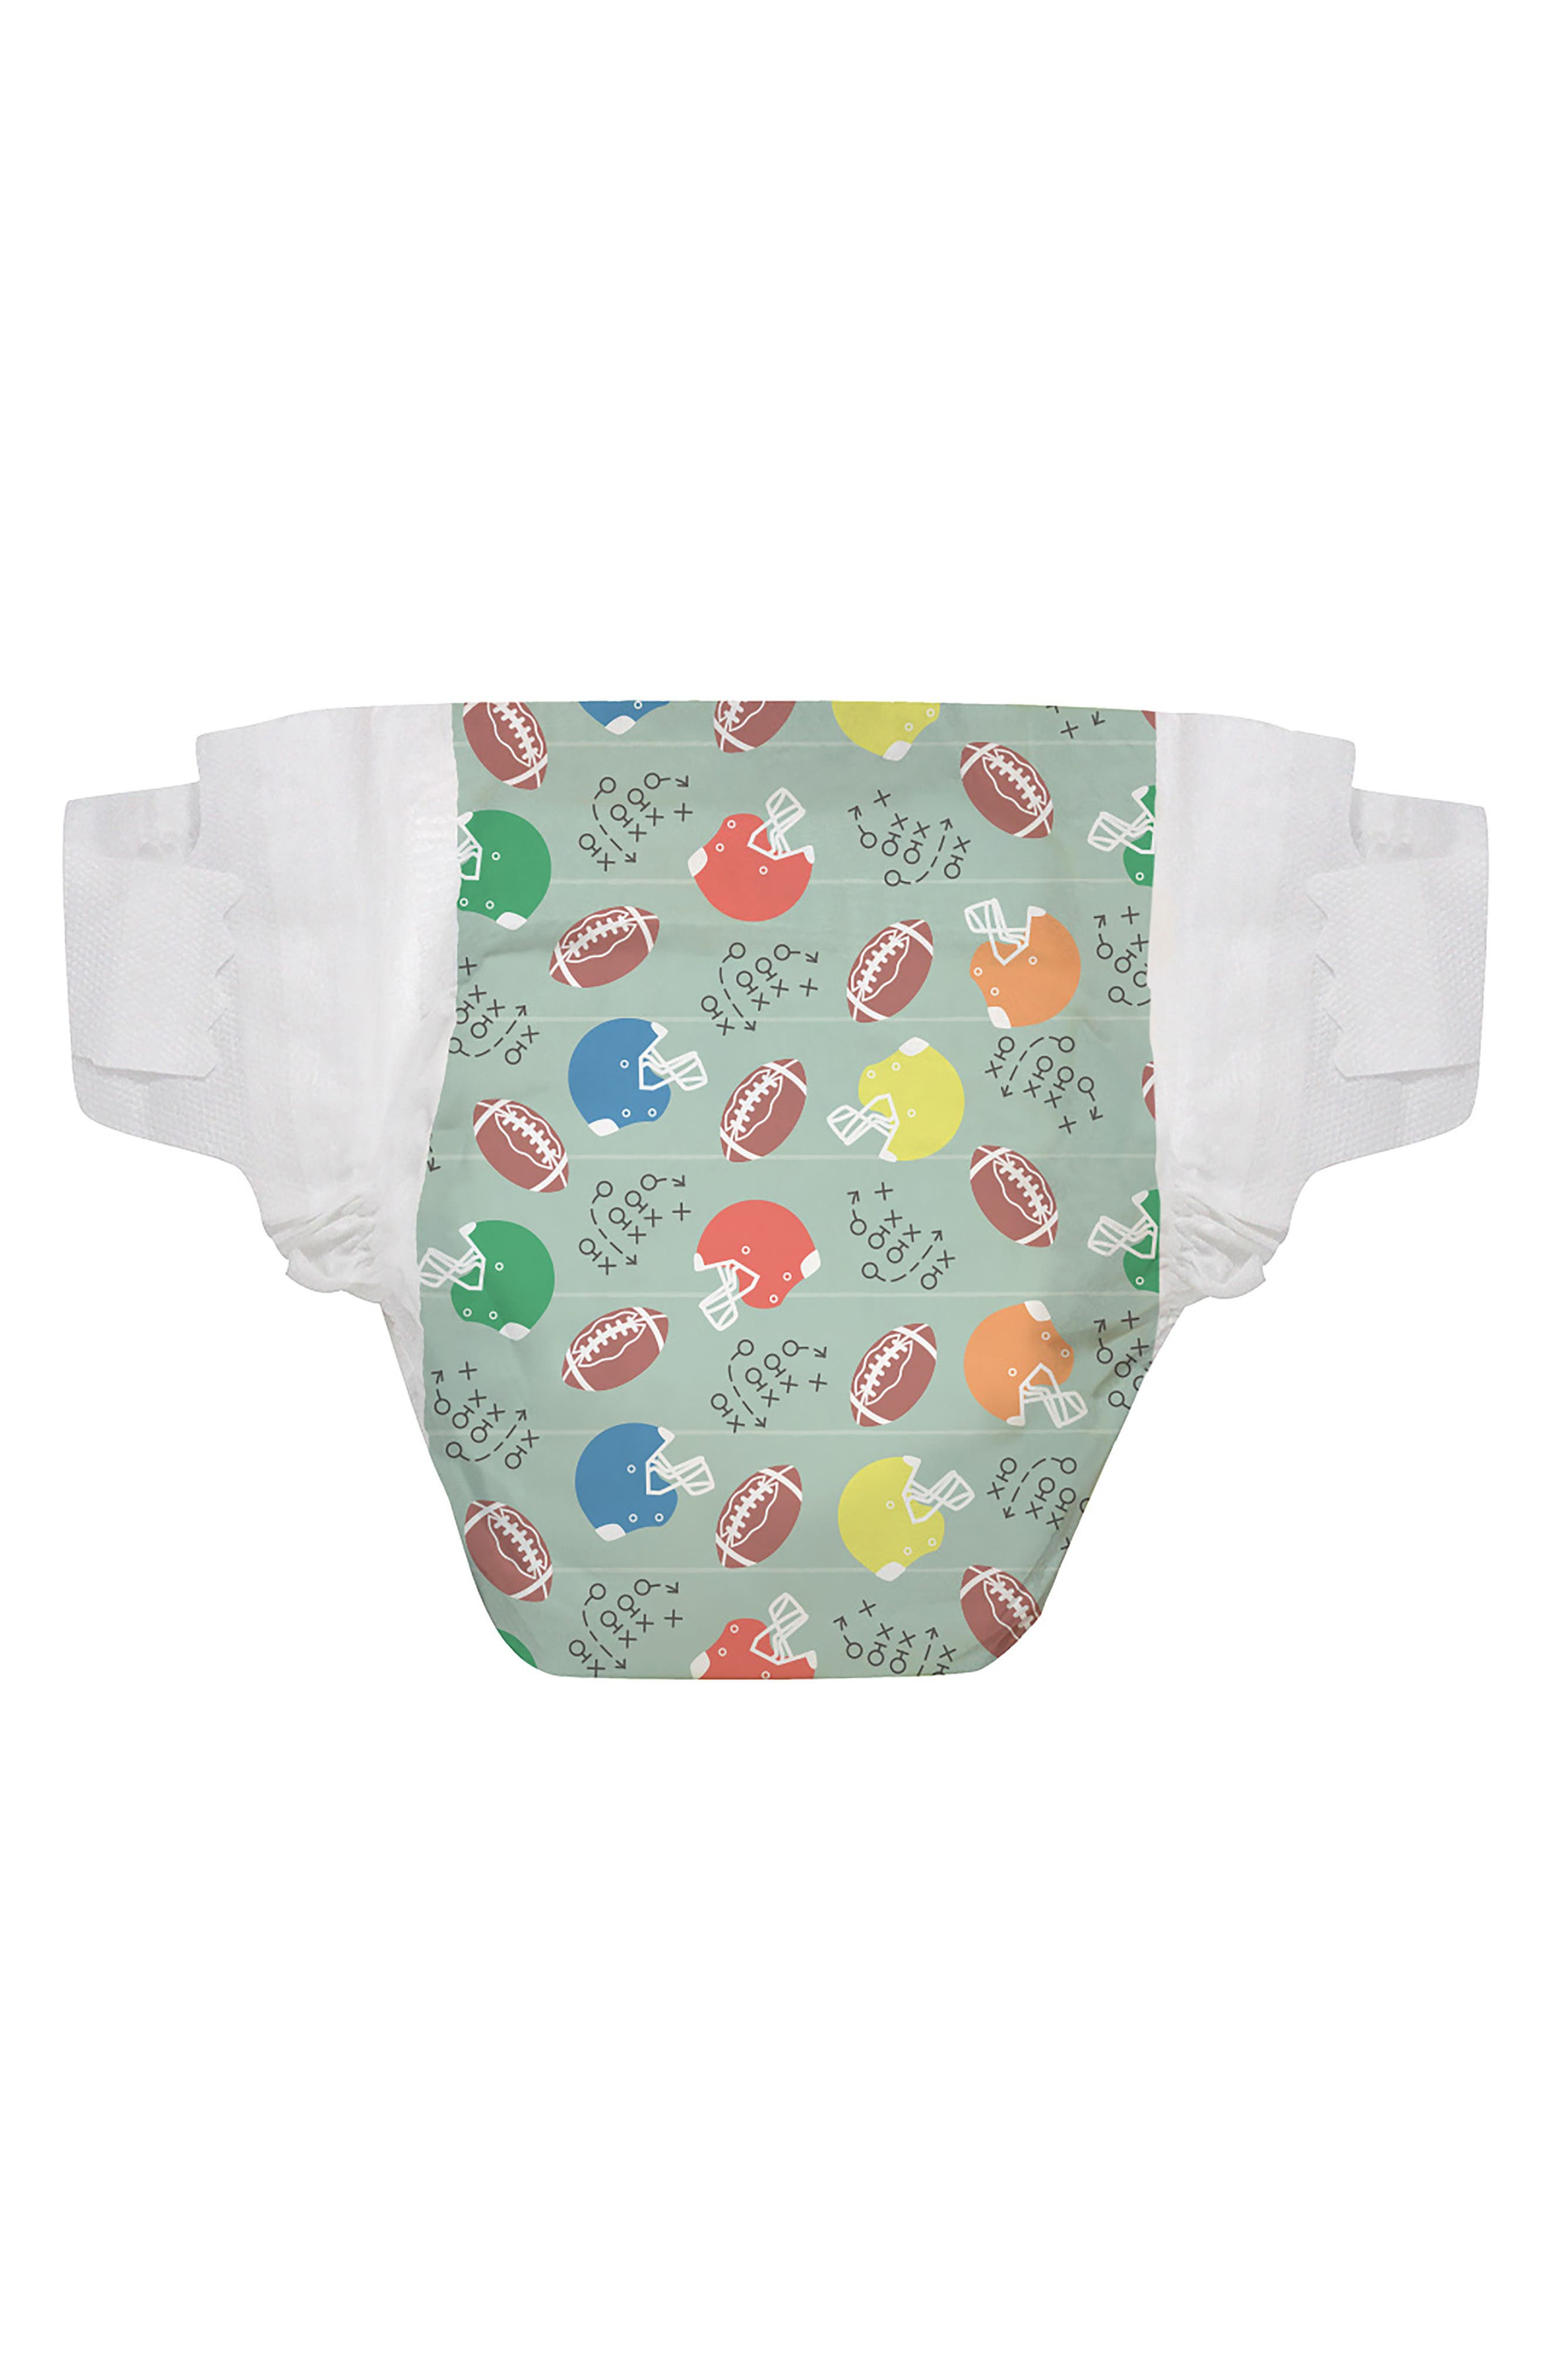 The Honest Company Patterned Diapers